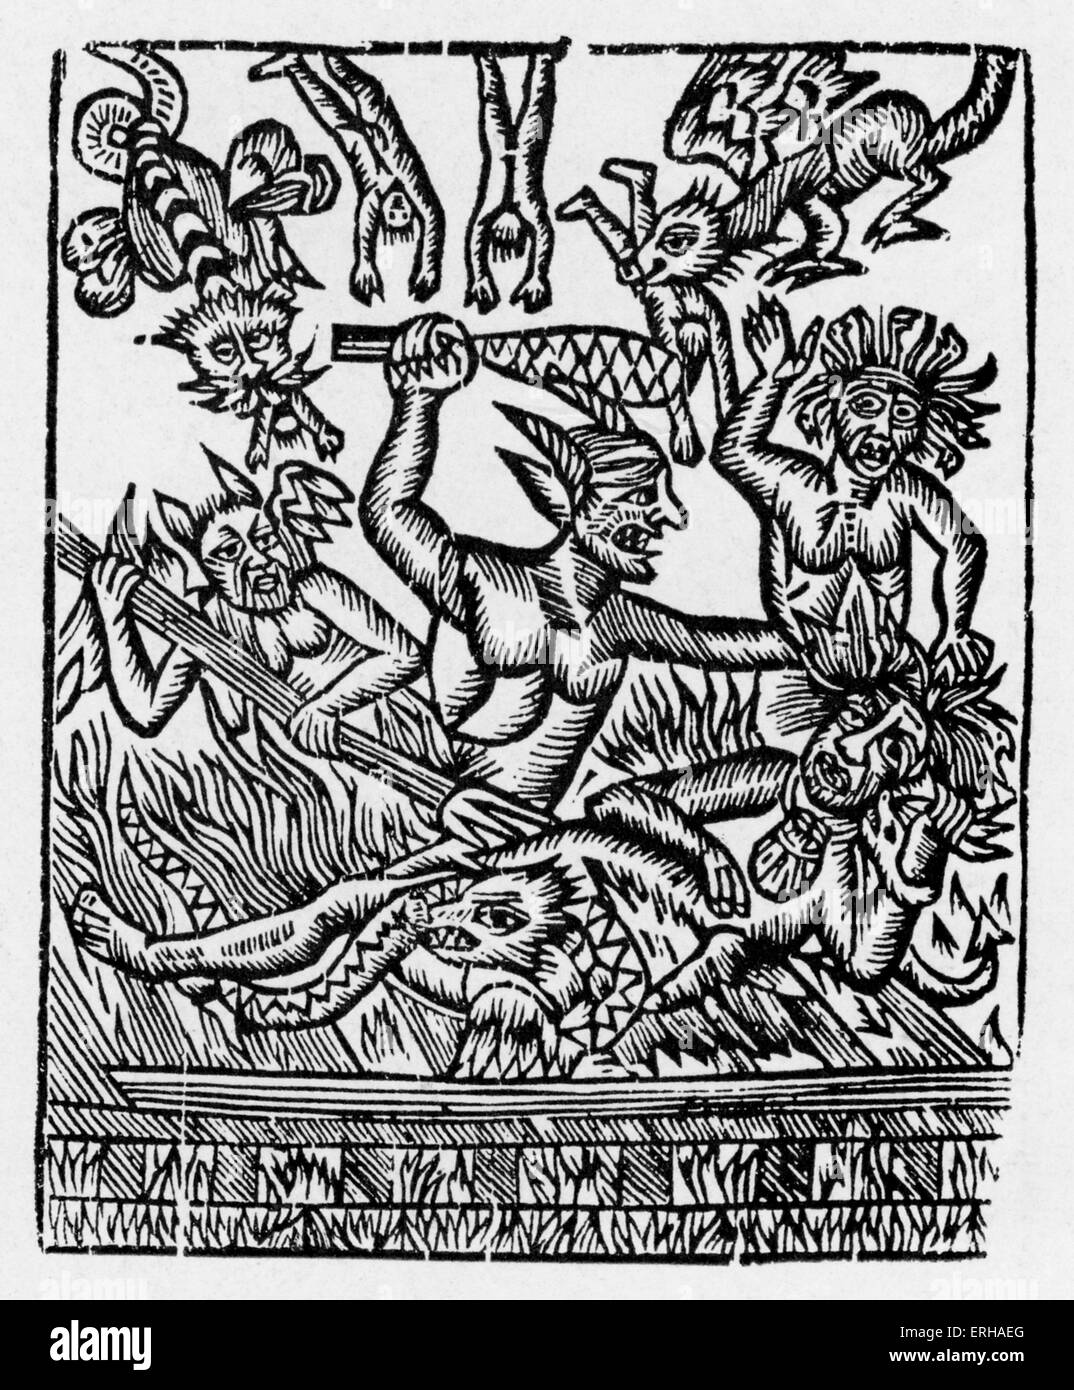 La Danse Macabre - wood engraving printed by Guyot Marchant, 1486, Paris. Copied by Jehan Lecocq, Troyes, 1539 and - Stock Image